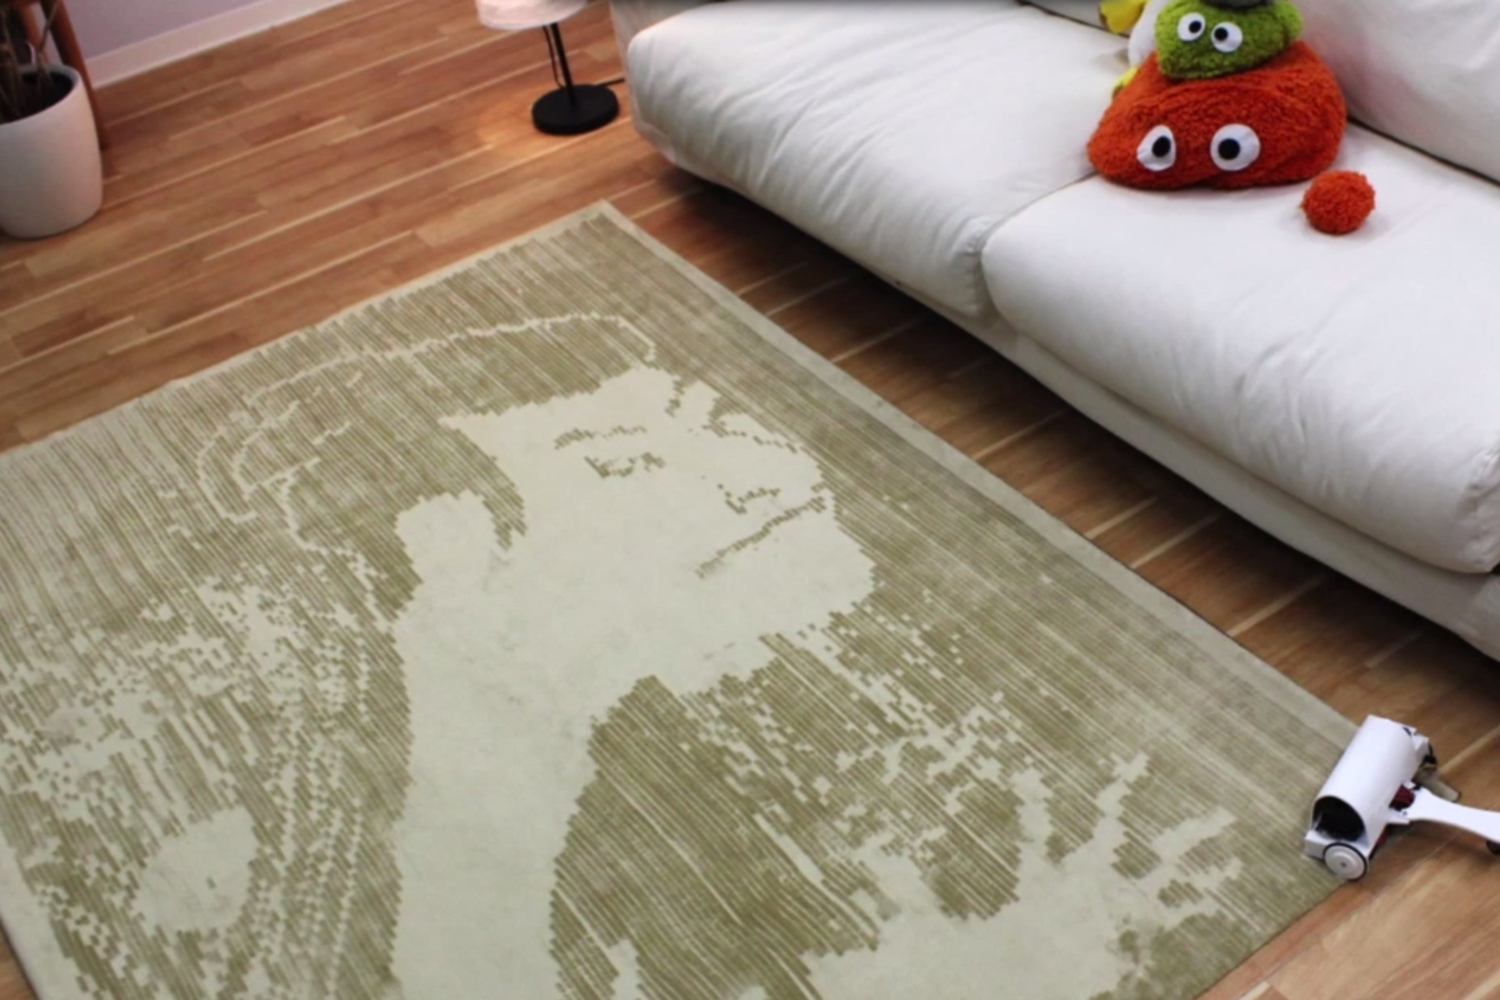 Turn Your Carpet Into A Work Of Art